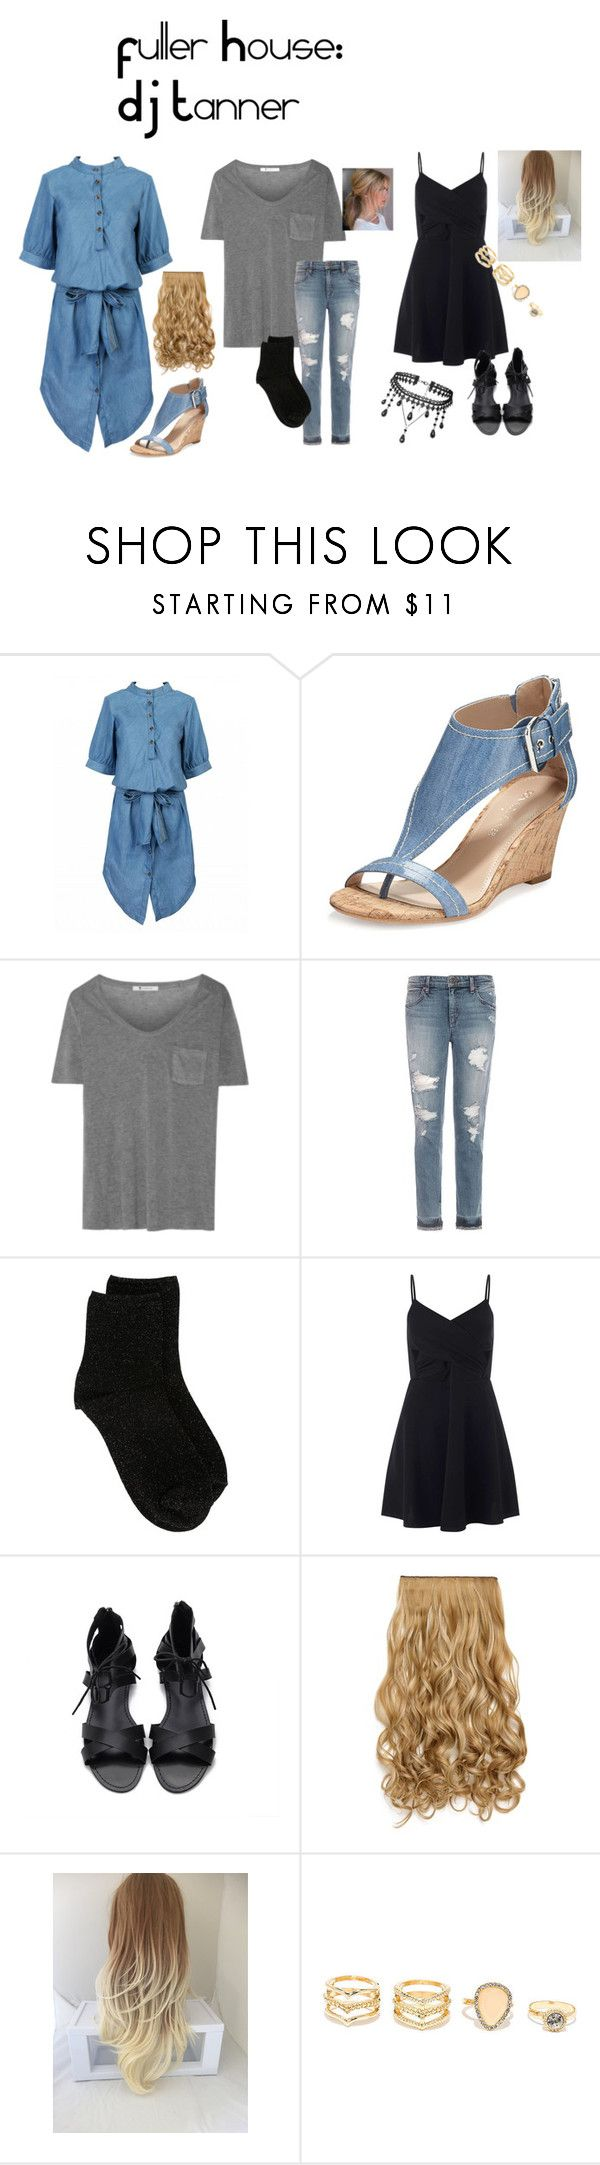 """DJ Tanner: Fuller House"" by merry-458 ❤ liked on Polyvore featuring Donald J Pliner, T By Alexander Wang, Joe's Jeans, Erika Cavallini Semi-Couture, Miss Selfridge and LULUS"